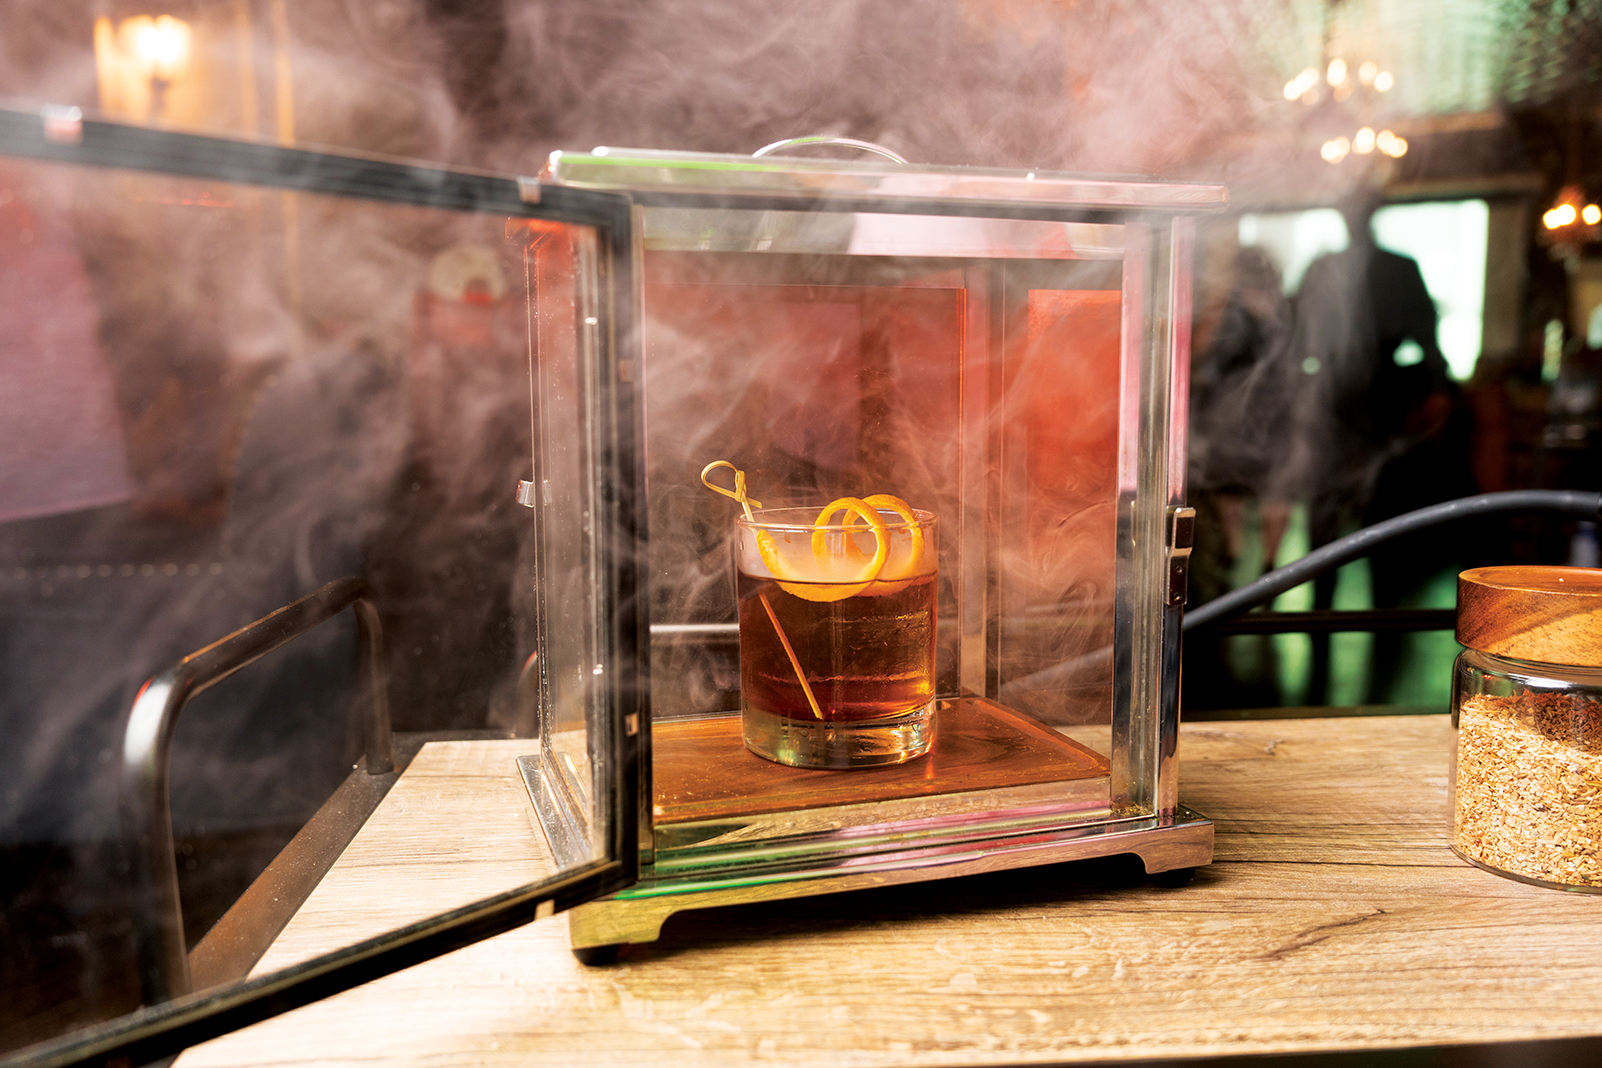 A smoked cocktail at the Hardware Store